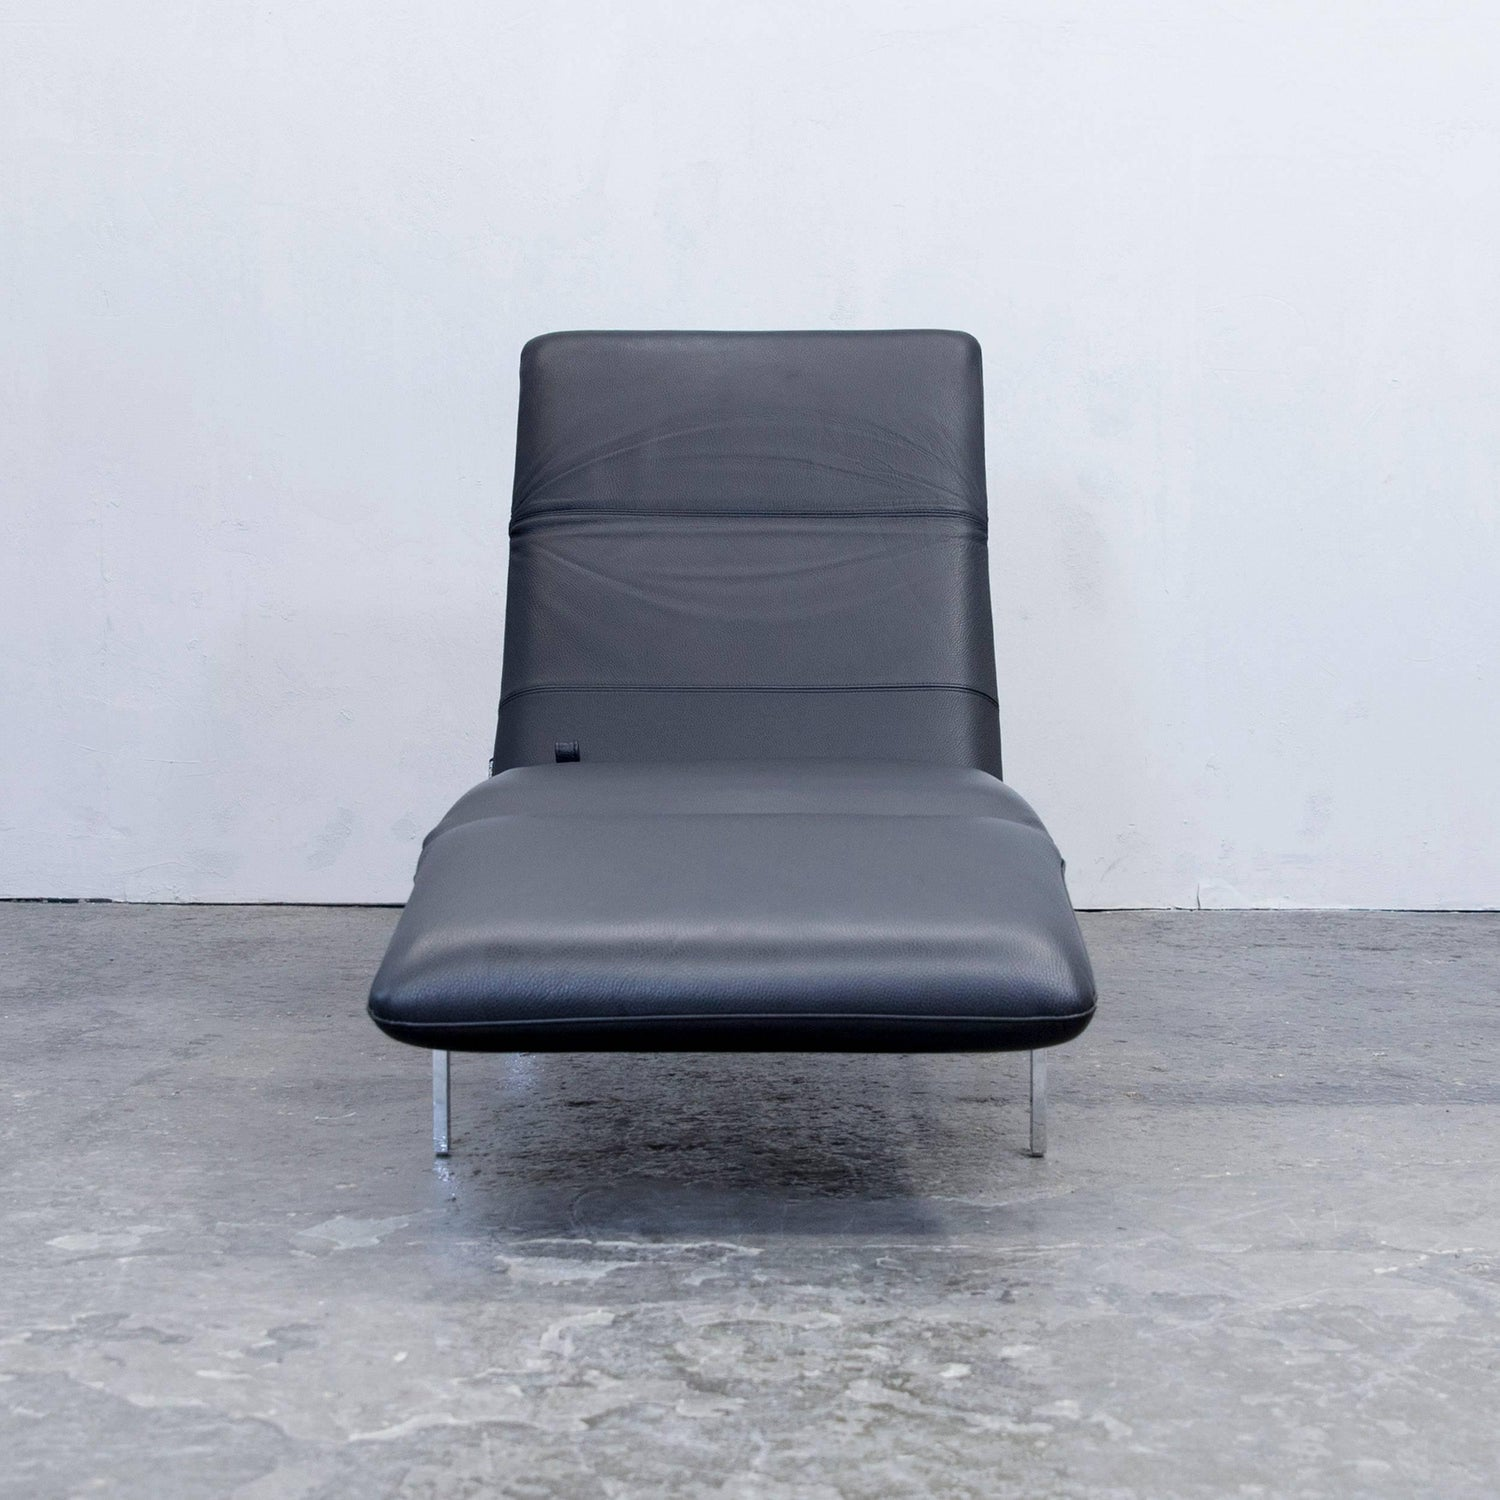 Recamiere Modern brühl and sippold roro designer chaise longue recamiere leather